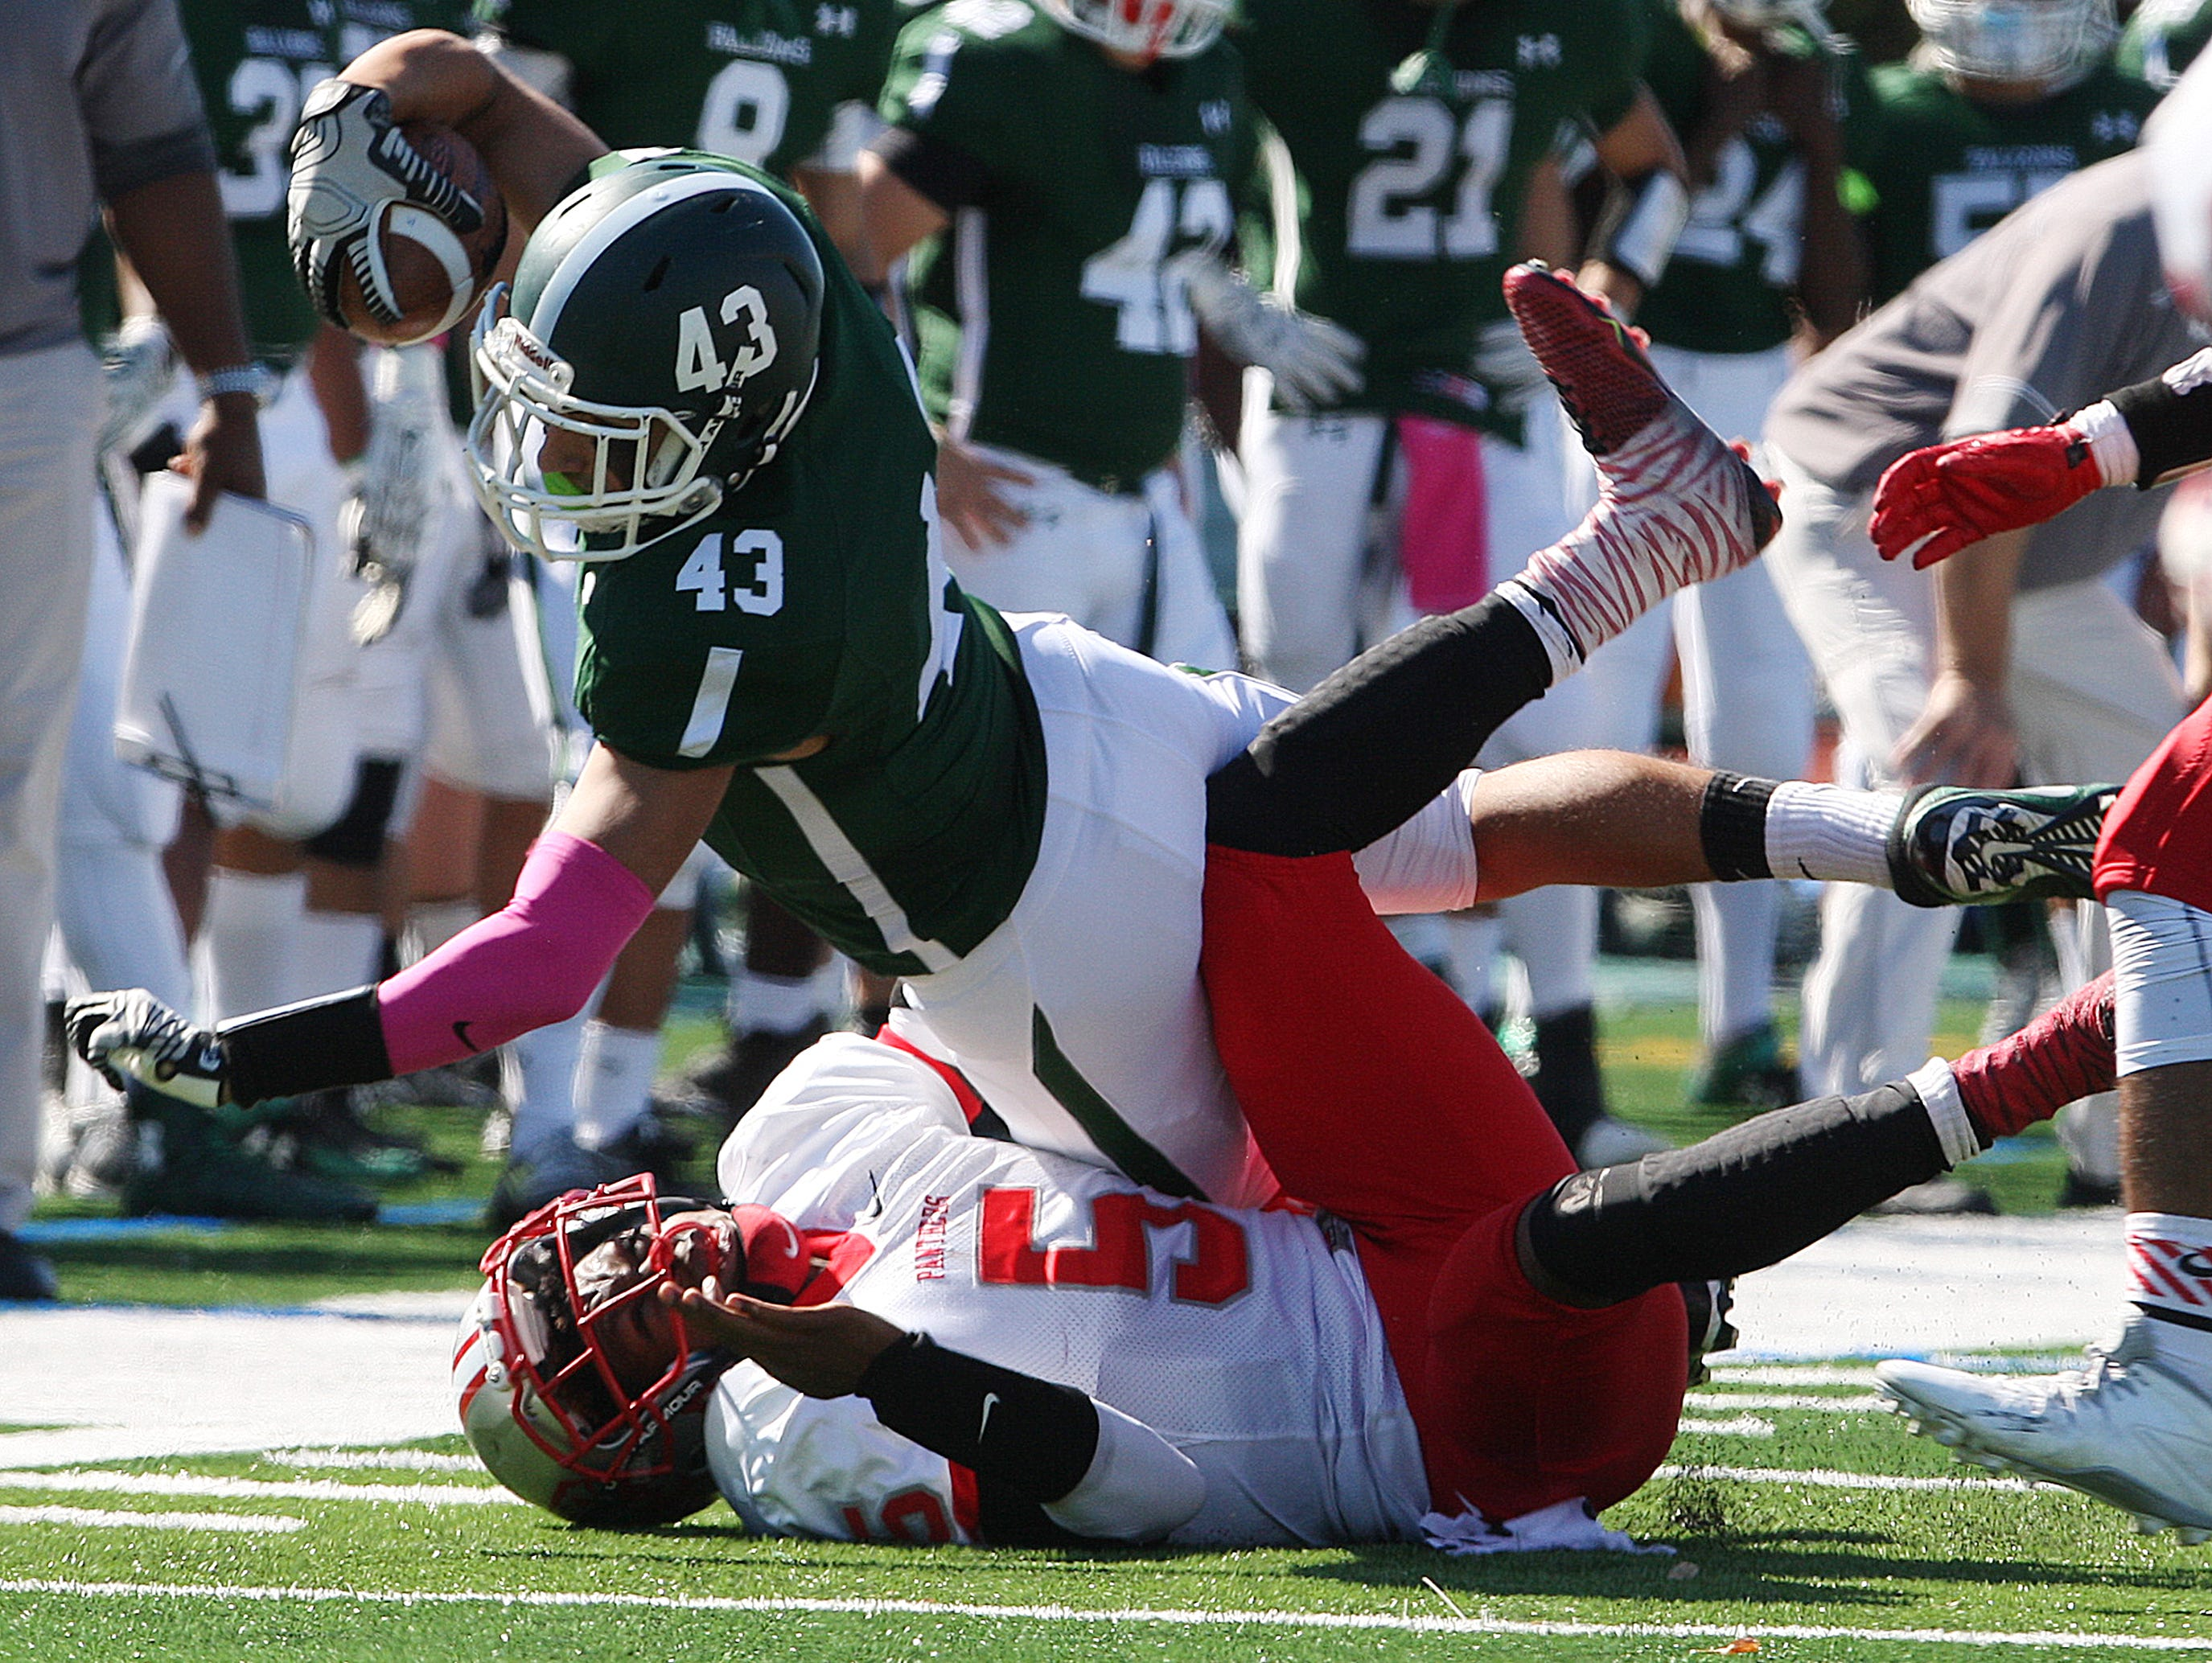 Action photos from the Perth Amboy High School at St. Joseph football game held at St. Joseph's new turf field in Metuhen on Saturday October 10, 2015. Here St. Joseph's # 43 Joe Papa dives over Perth Amboy's # 5 Hakeem Guthrie for 1st down yardage during the first half of play.